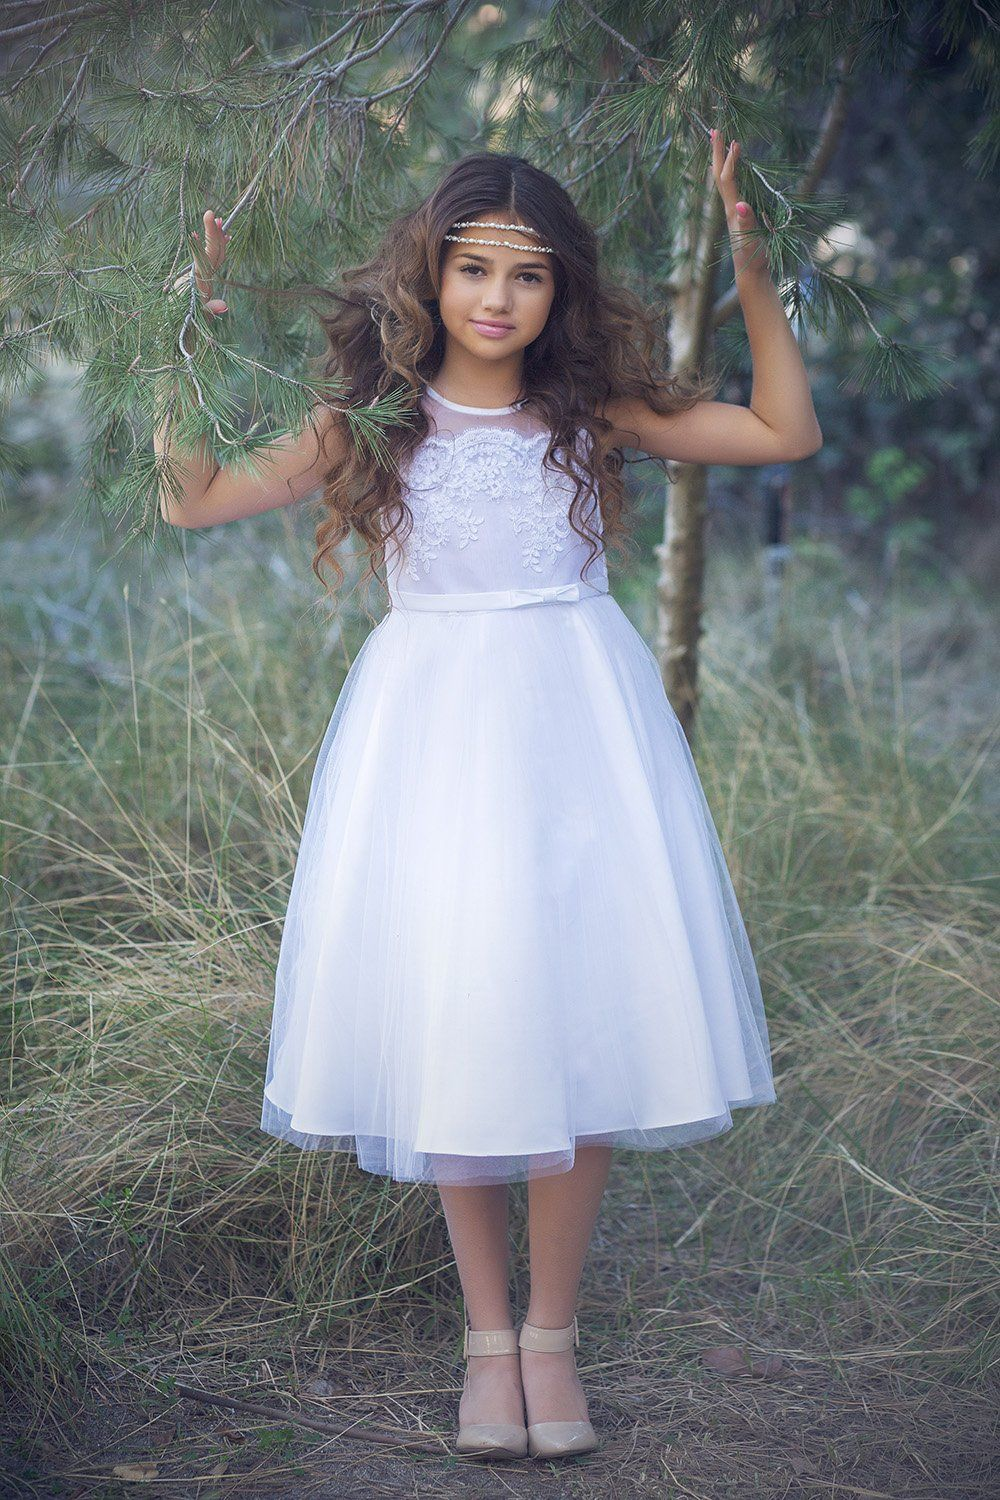 White Satin Tulle Skirt Flower Girl Dress With Scalloped Lace On